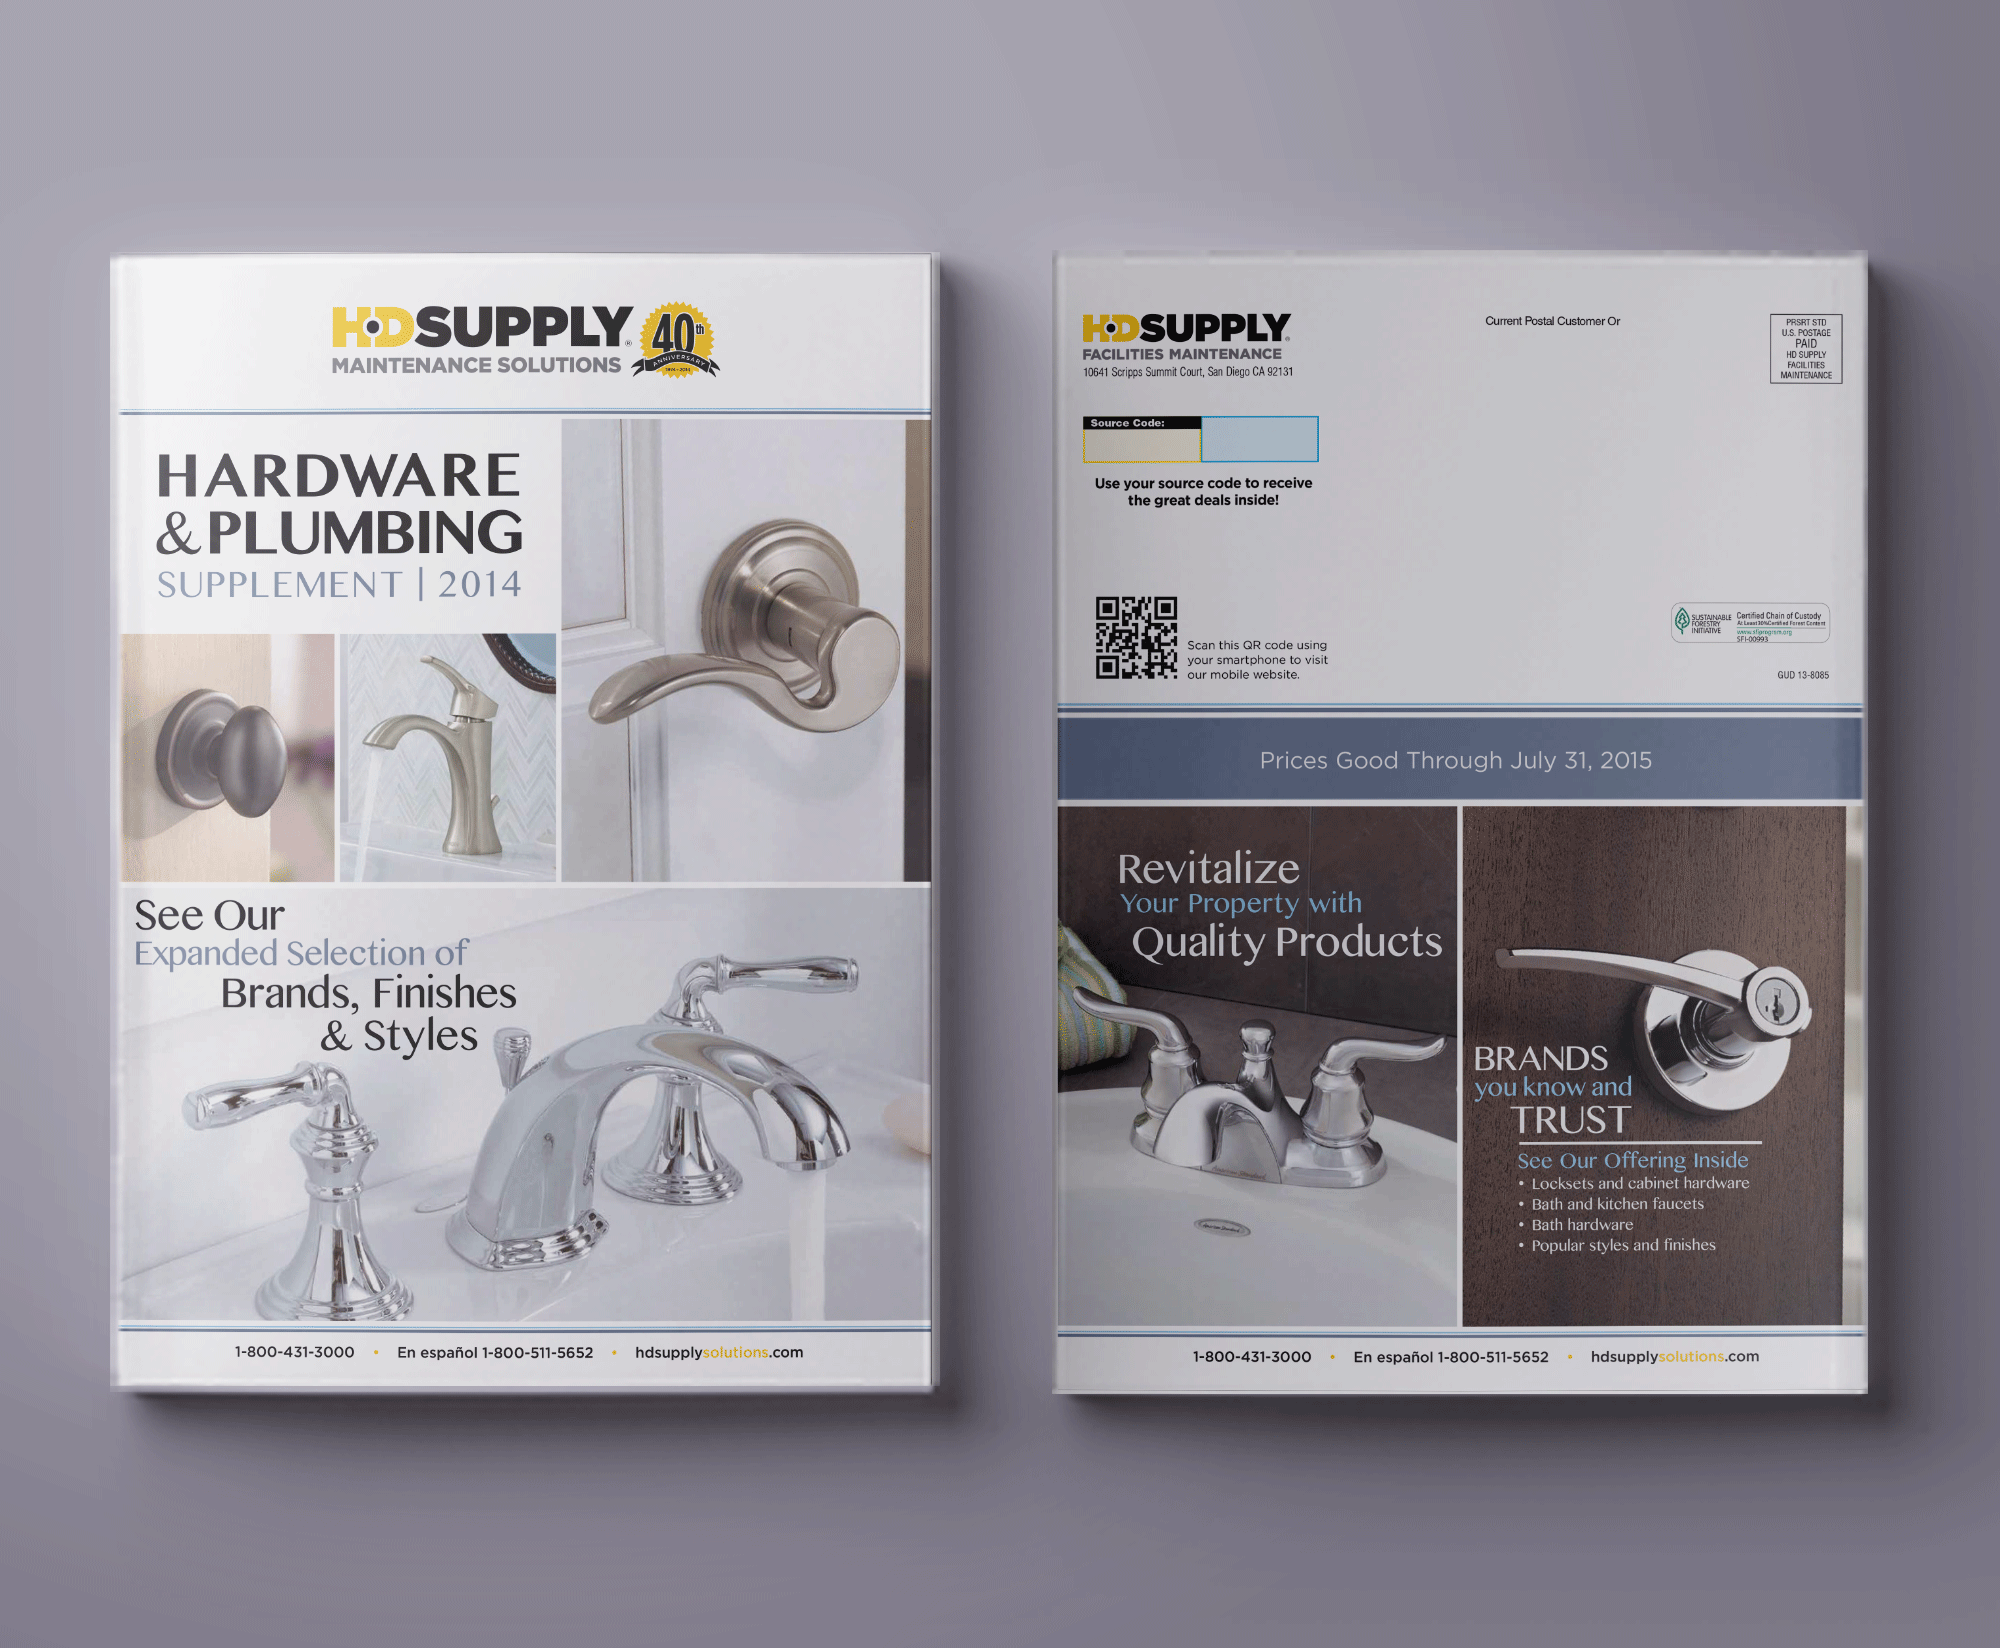 Special Order Plumbing and Hardware Guide Covers